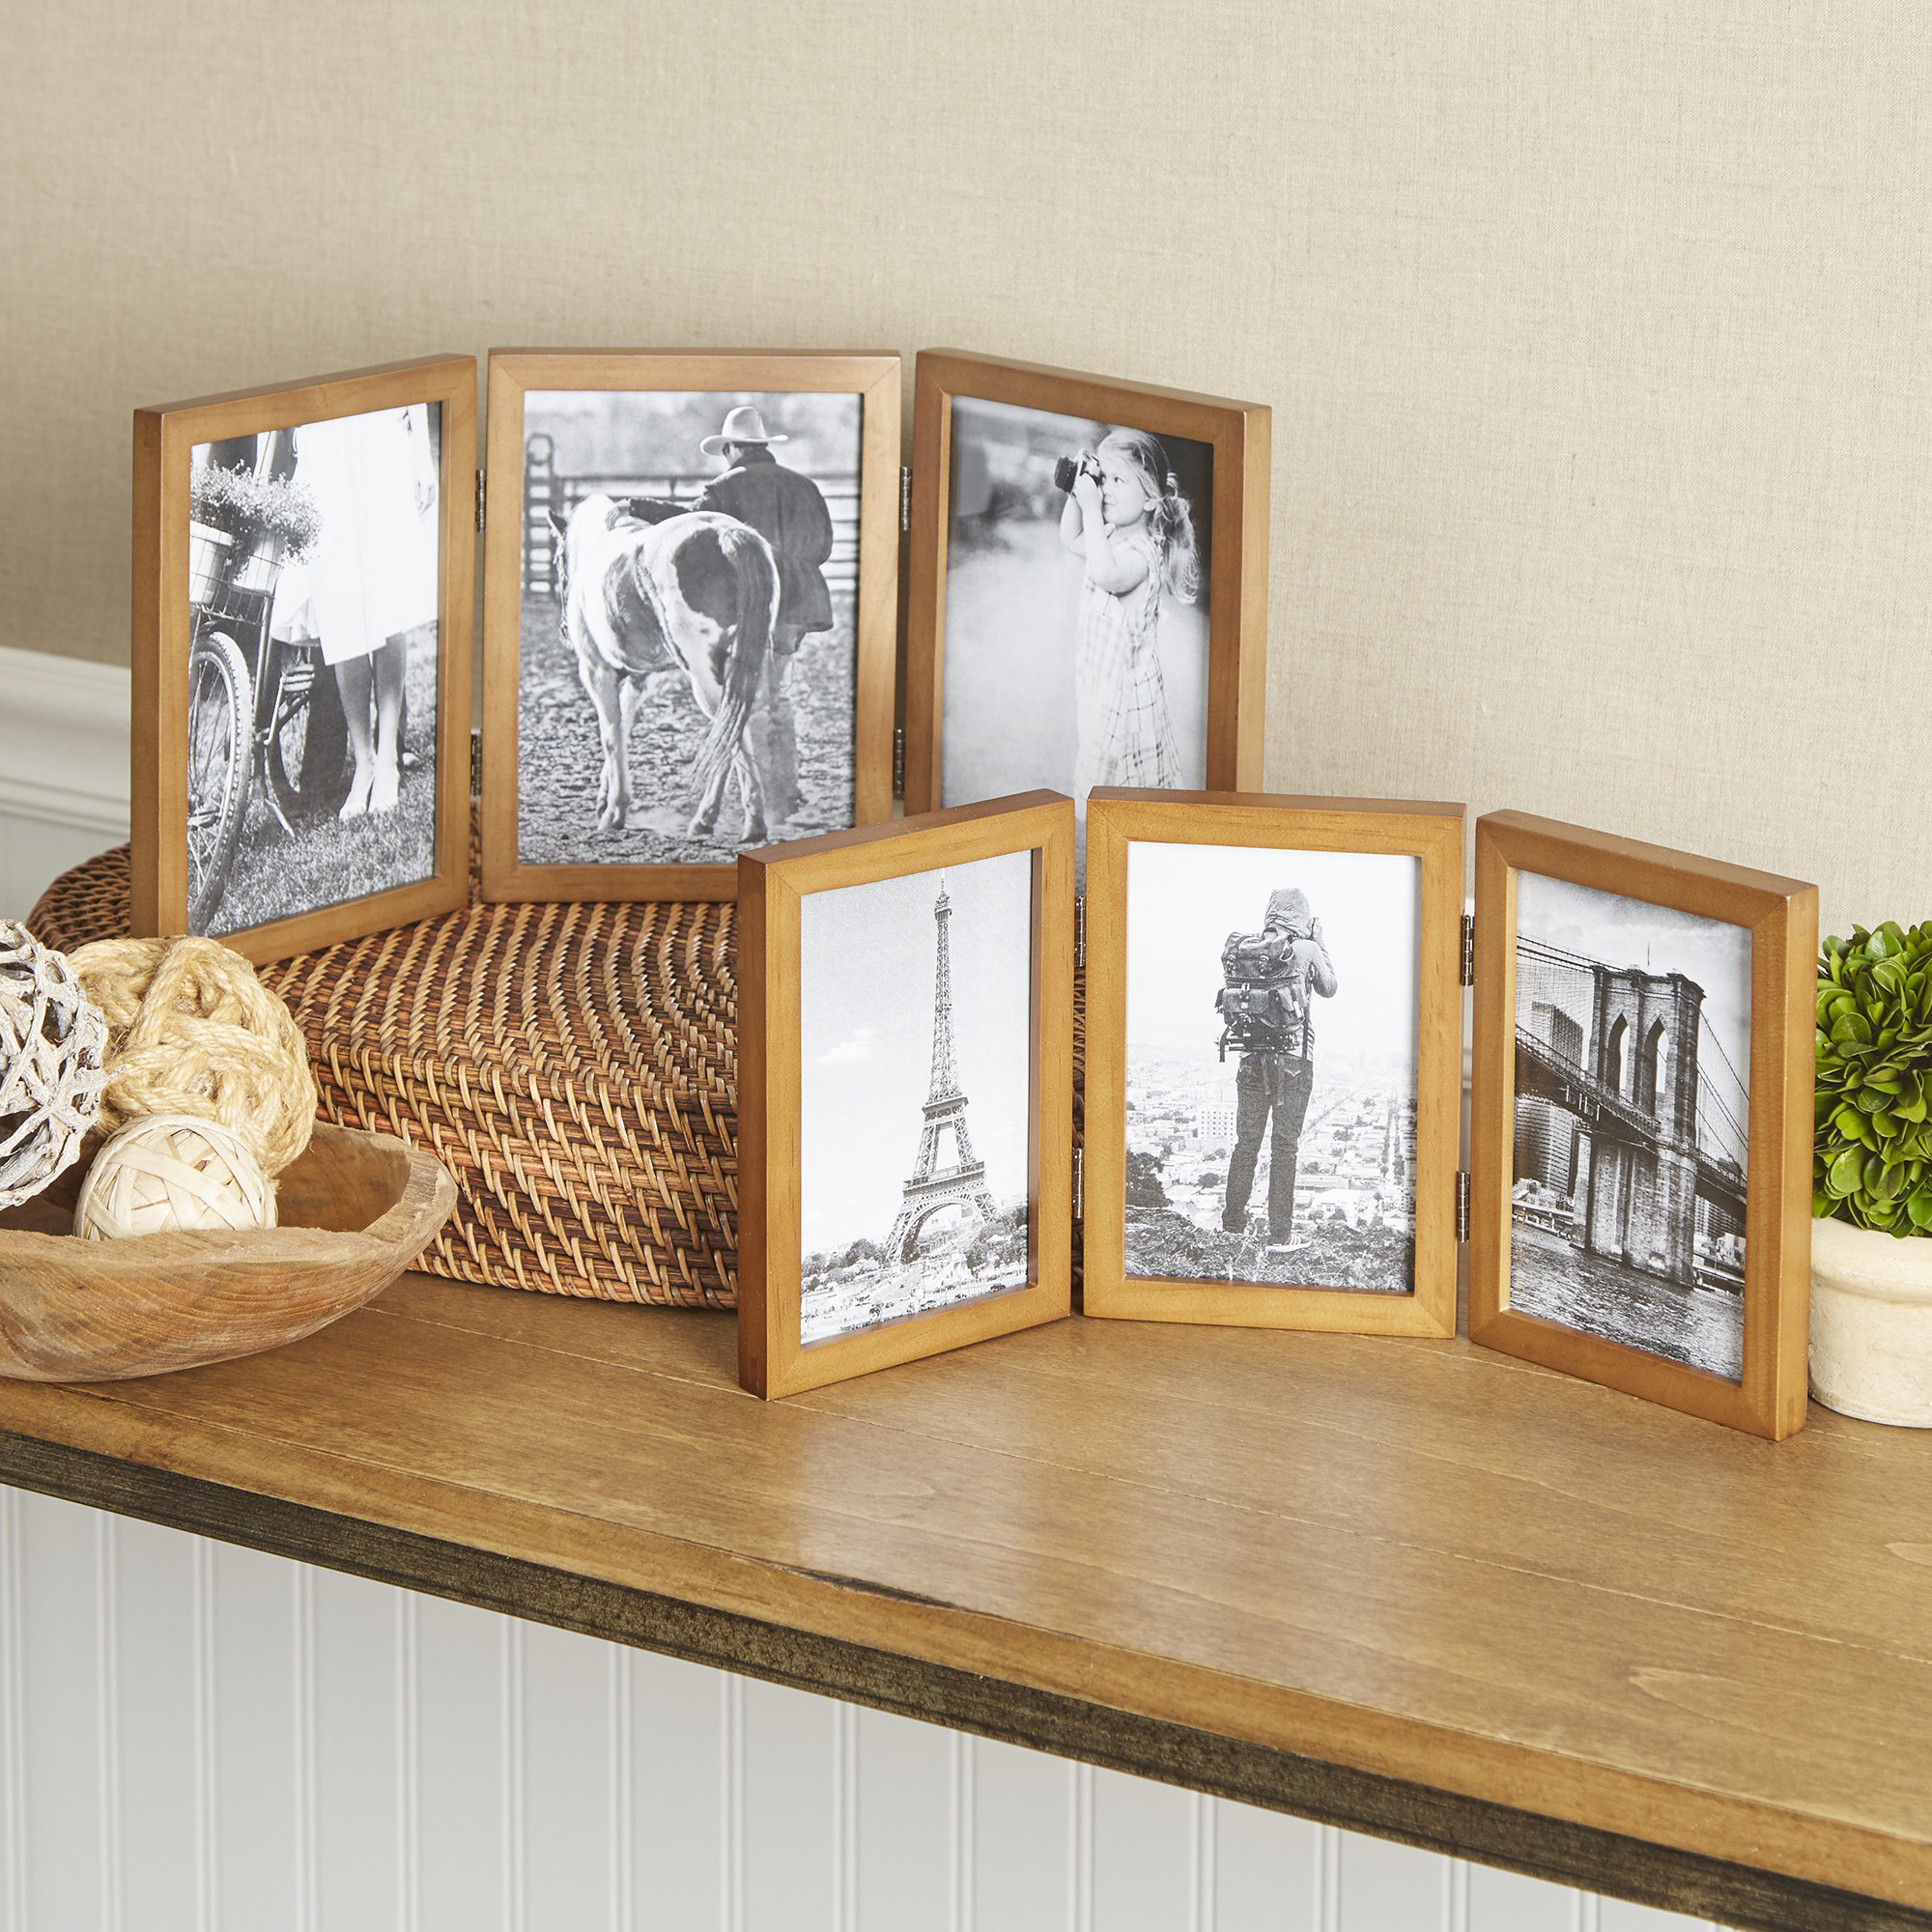 Hinged Triple Picture Frame With Regard To Millanocket Metal Wheel Photo Holder Wall Decor (View 15 of 30)